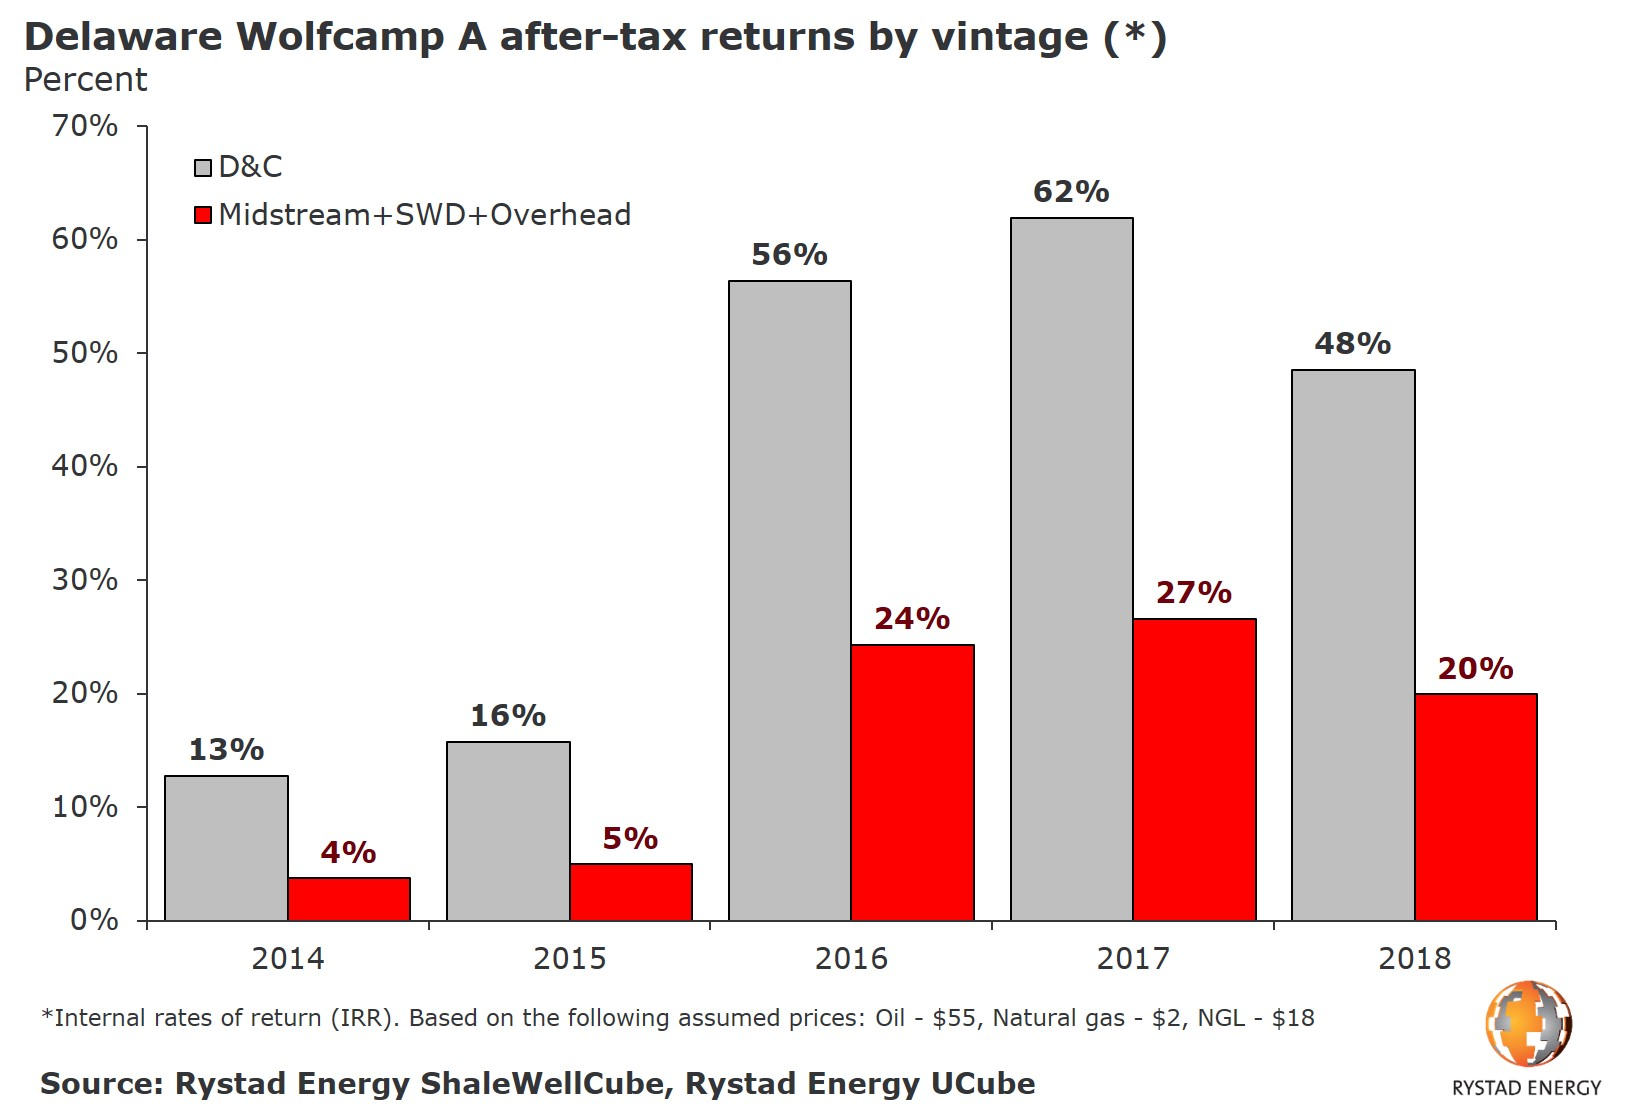 A bar chart showing the Delaware Wolfcamp A after-tax returns by vintage (*) in percent. Source: Rystad Energy ShaleWellCube, Rystad Energy UCube